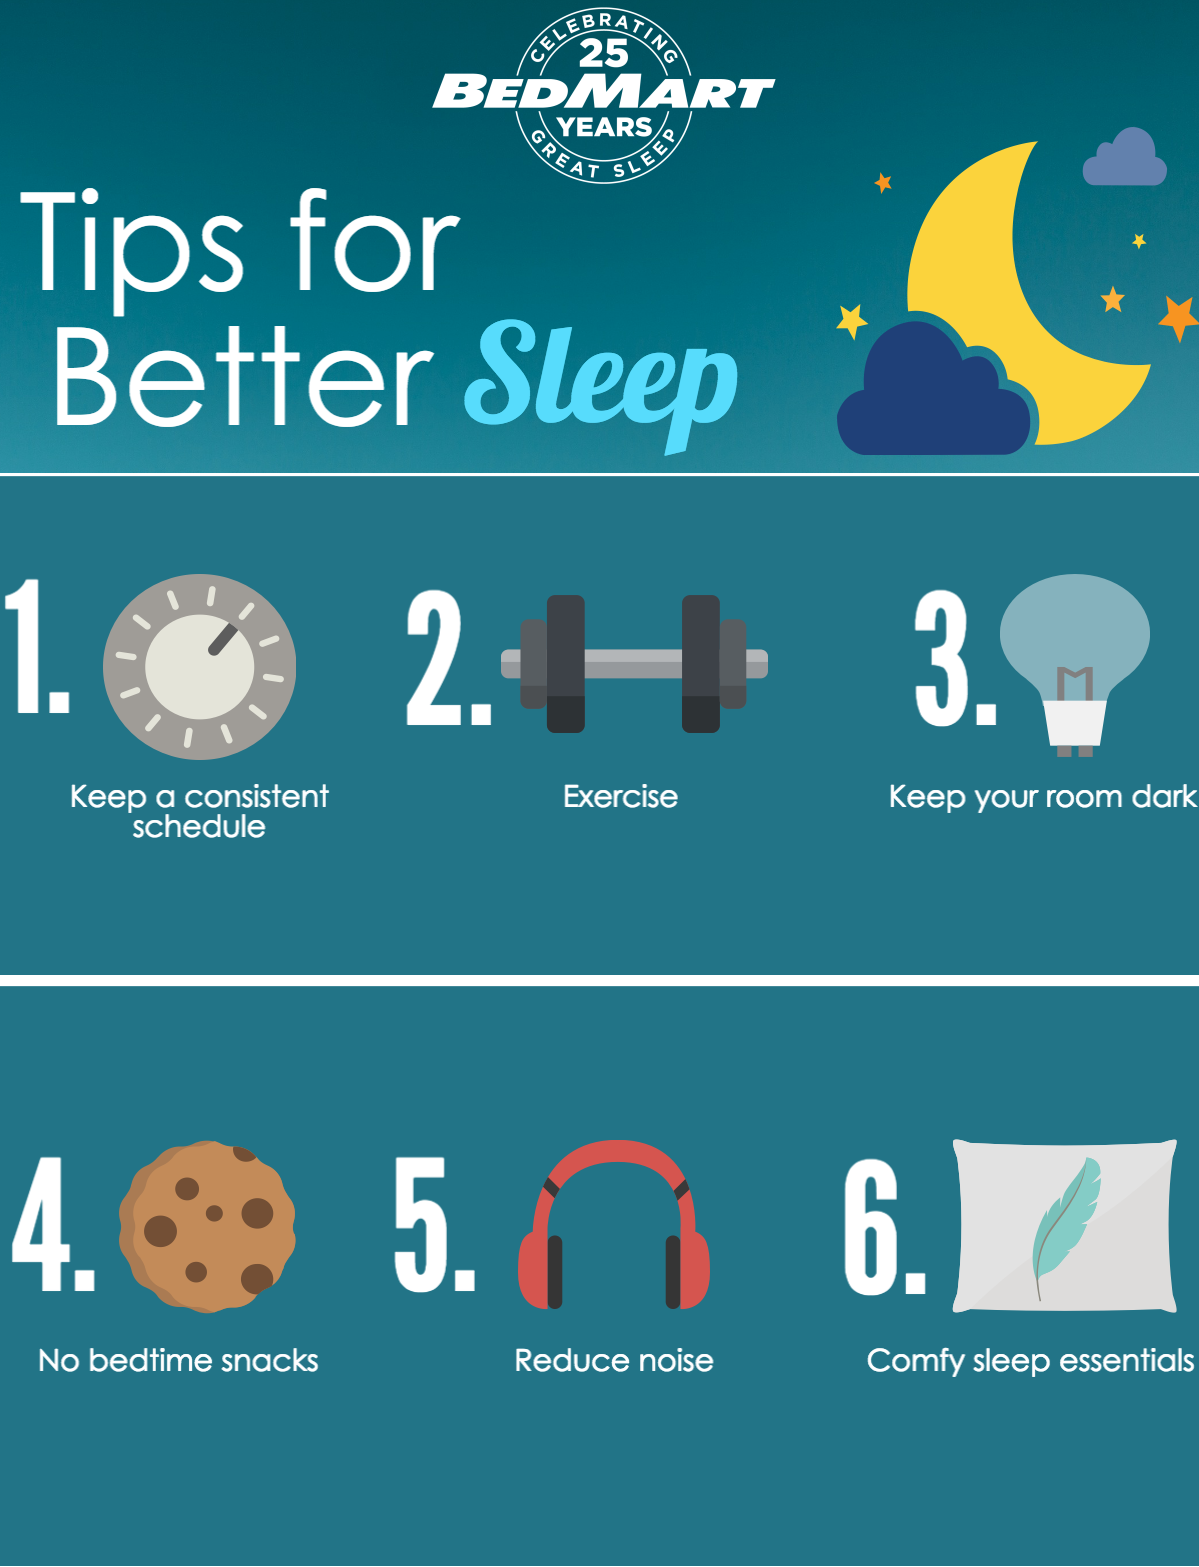 Bed Smart Tips For Better Sleep With Images